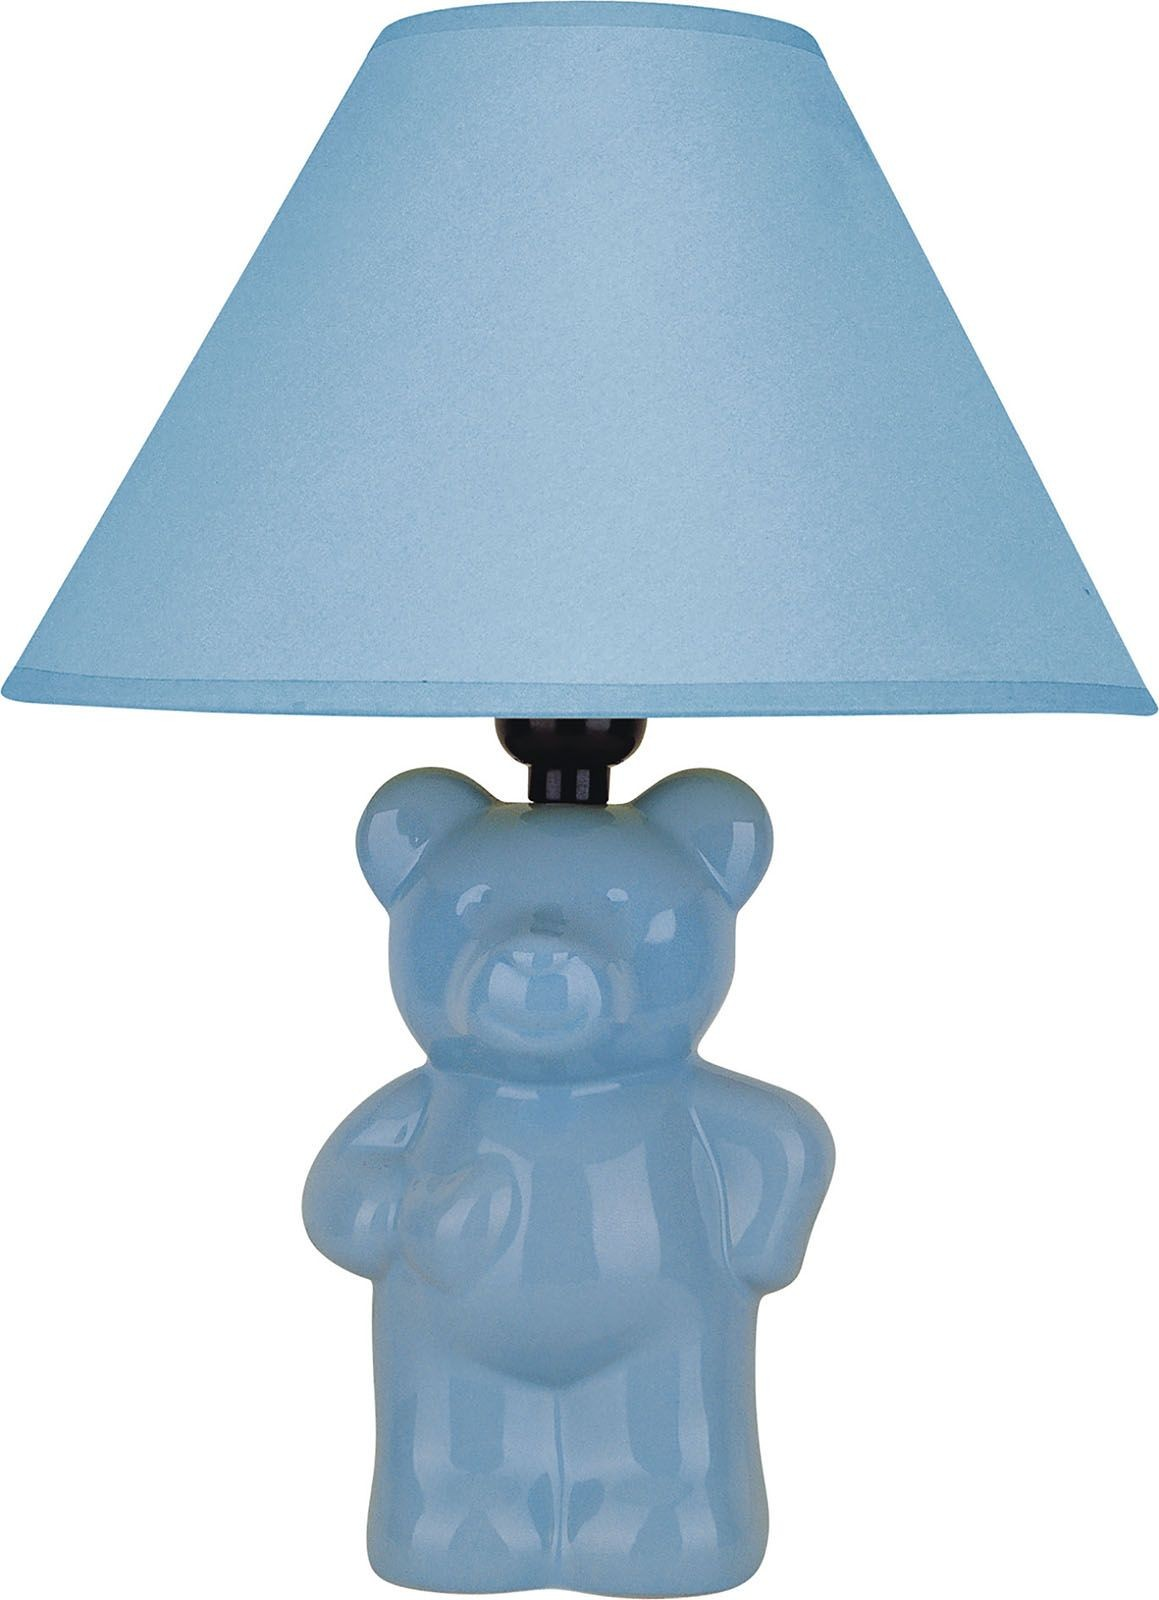 Gumi blue bear table lamp from furniture of america coleman gumi blue bear table lamp geotapseo Choice Image